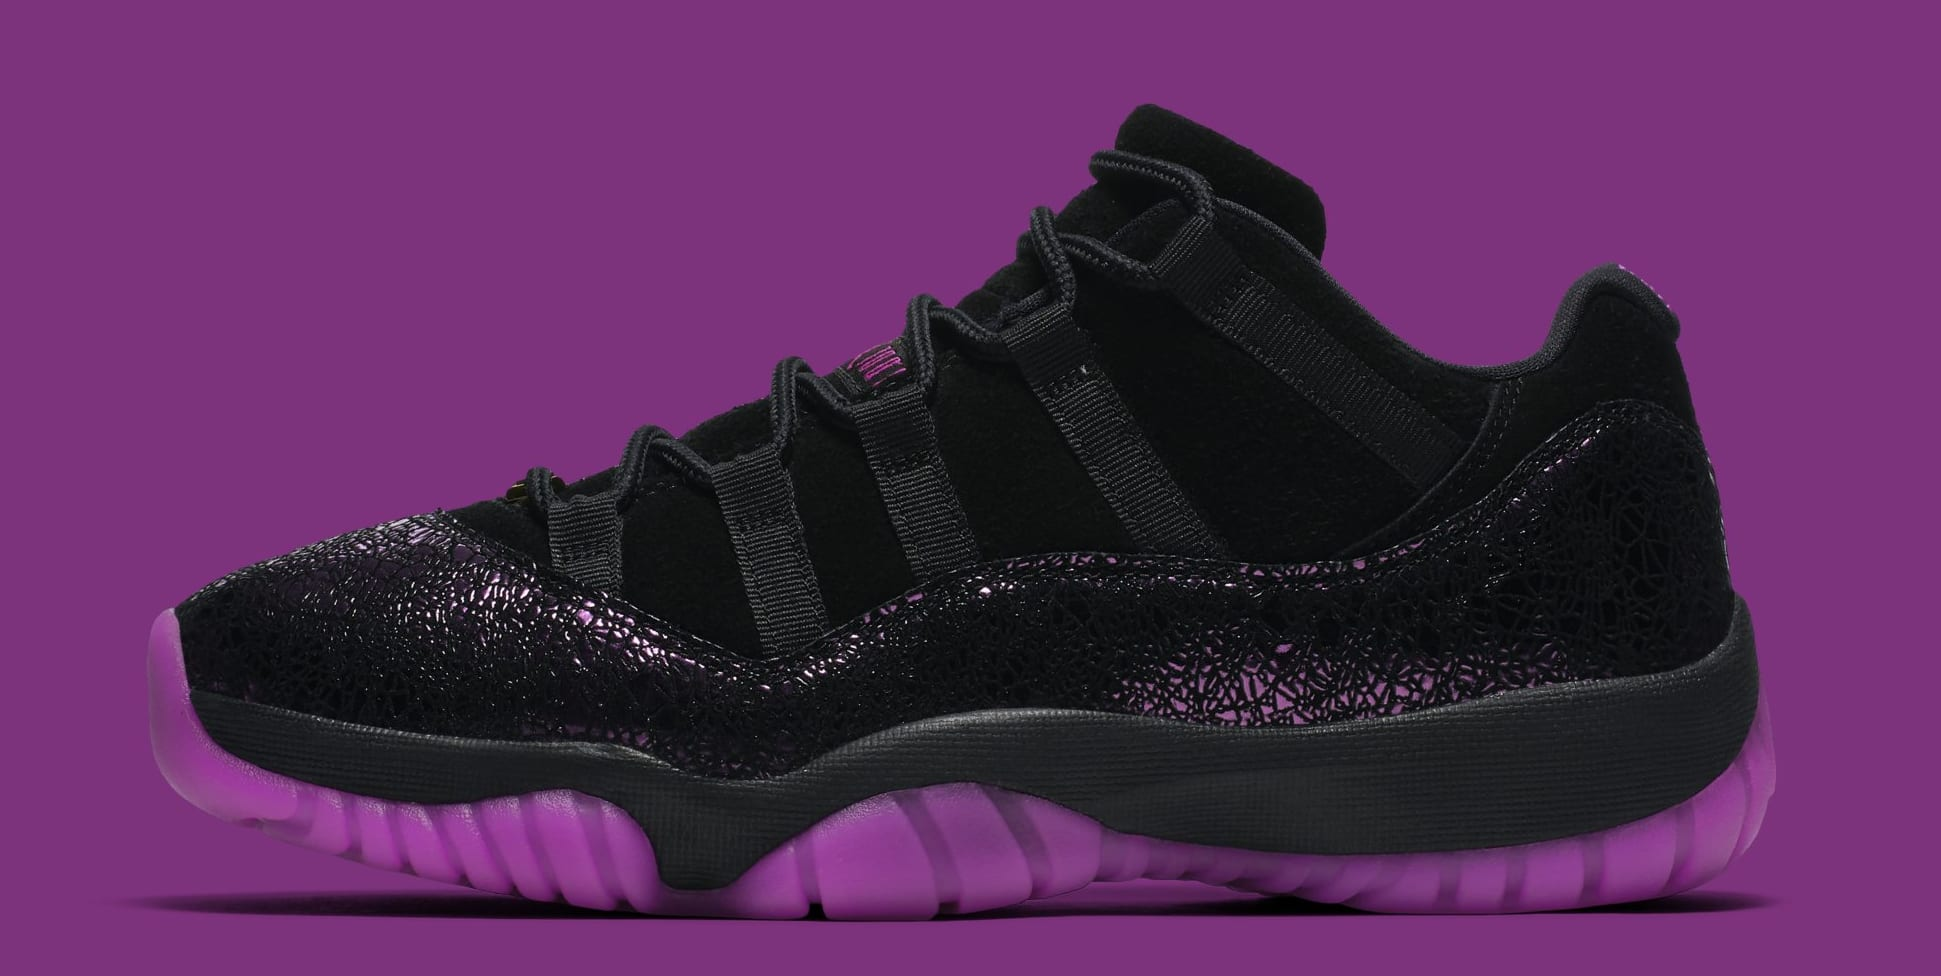 Air Jordan 11 Low 'Rook to Queen' AQ5149-005 (Lateral)